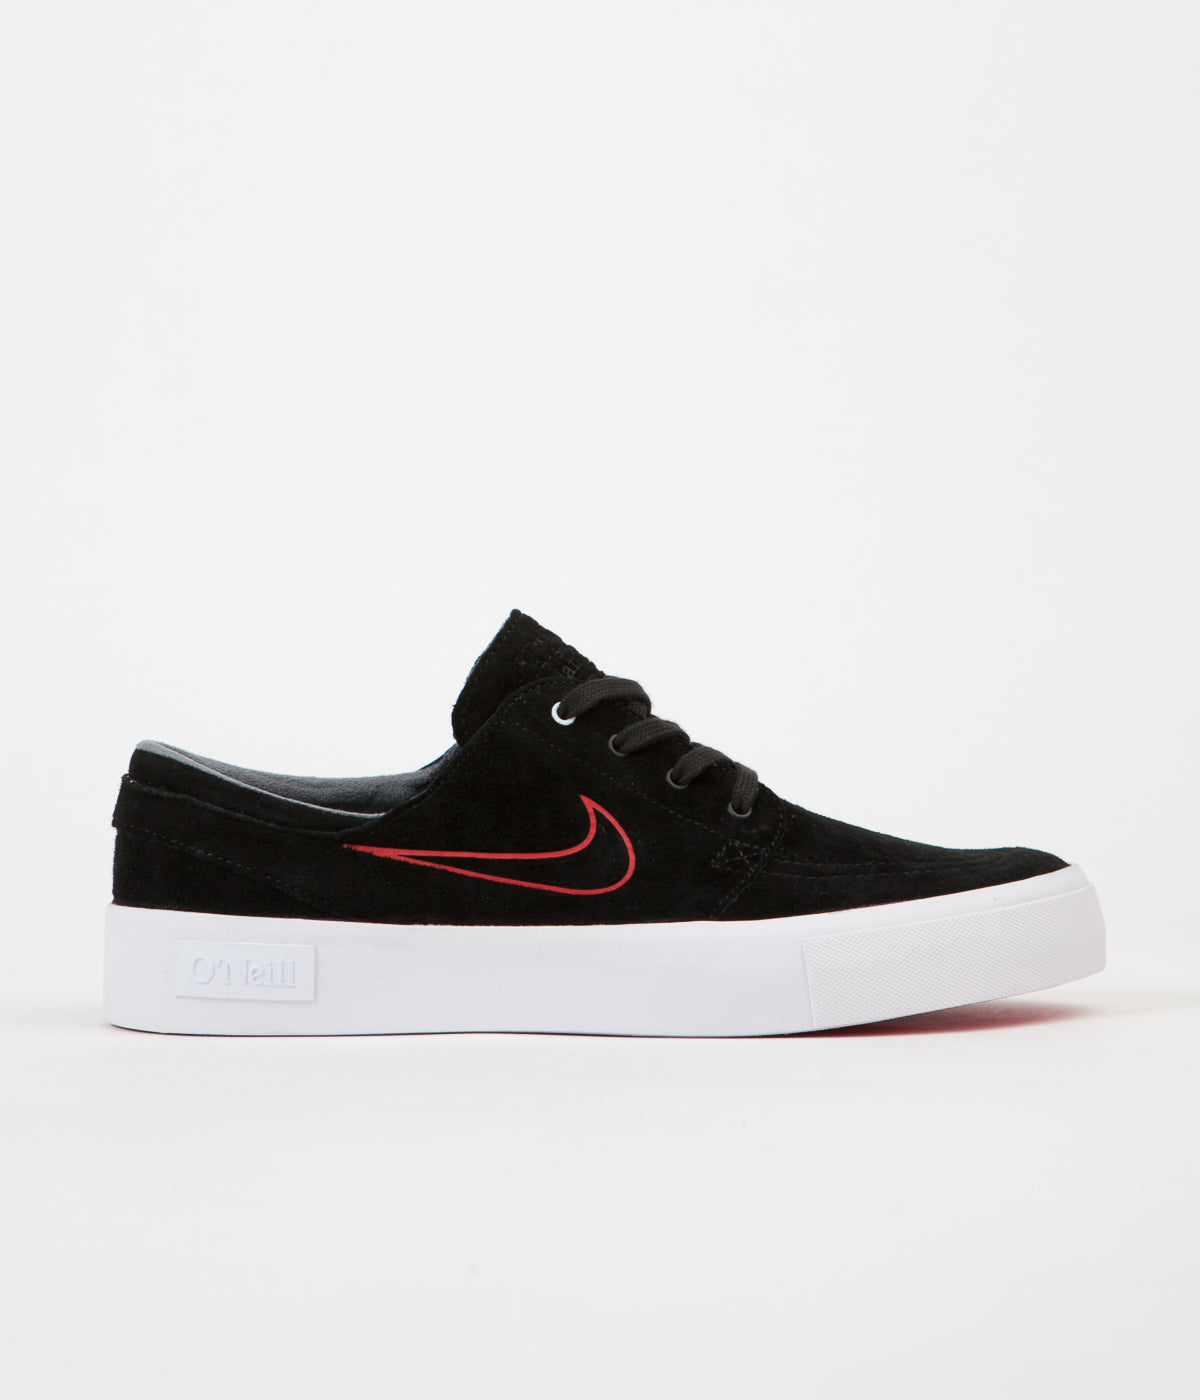 d4e6d57bdc7f Nike SB Stefan Janoski HT Shane O Neill Shoes - Black   University Red -  White